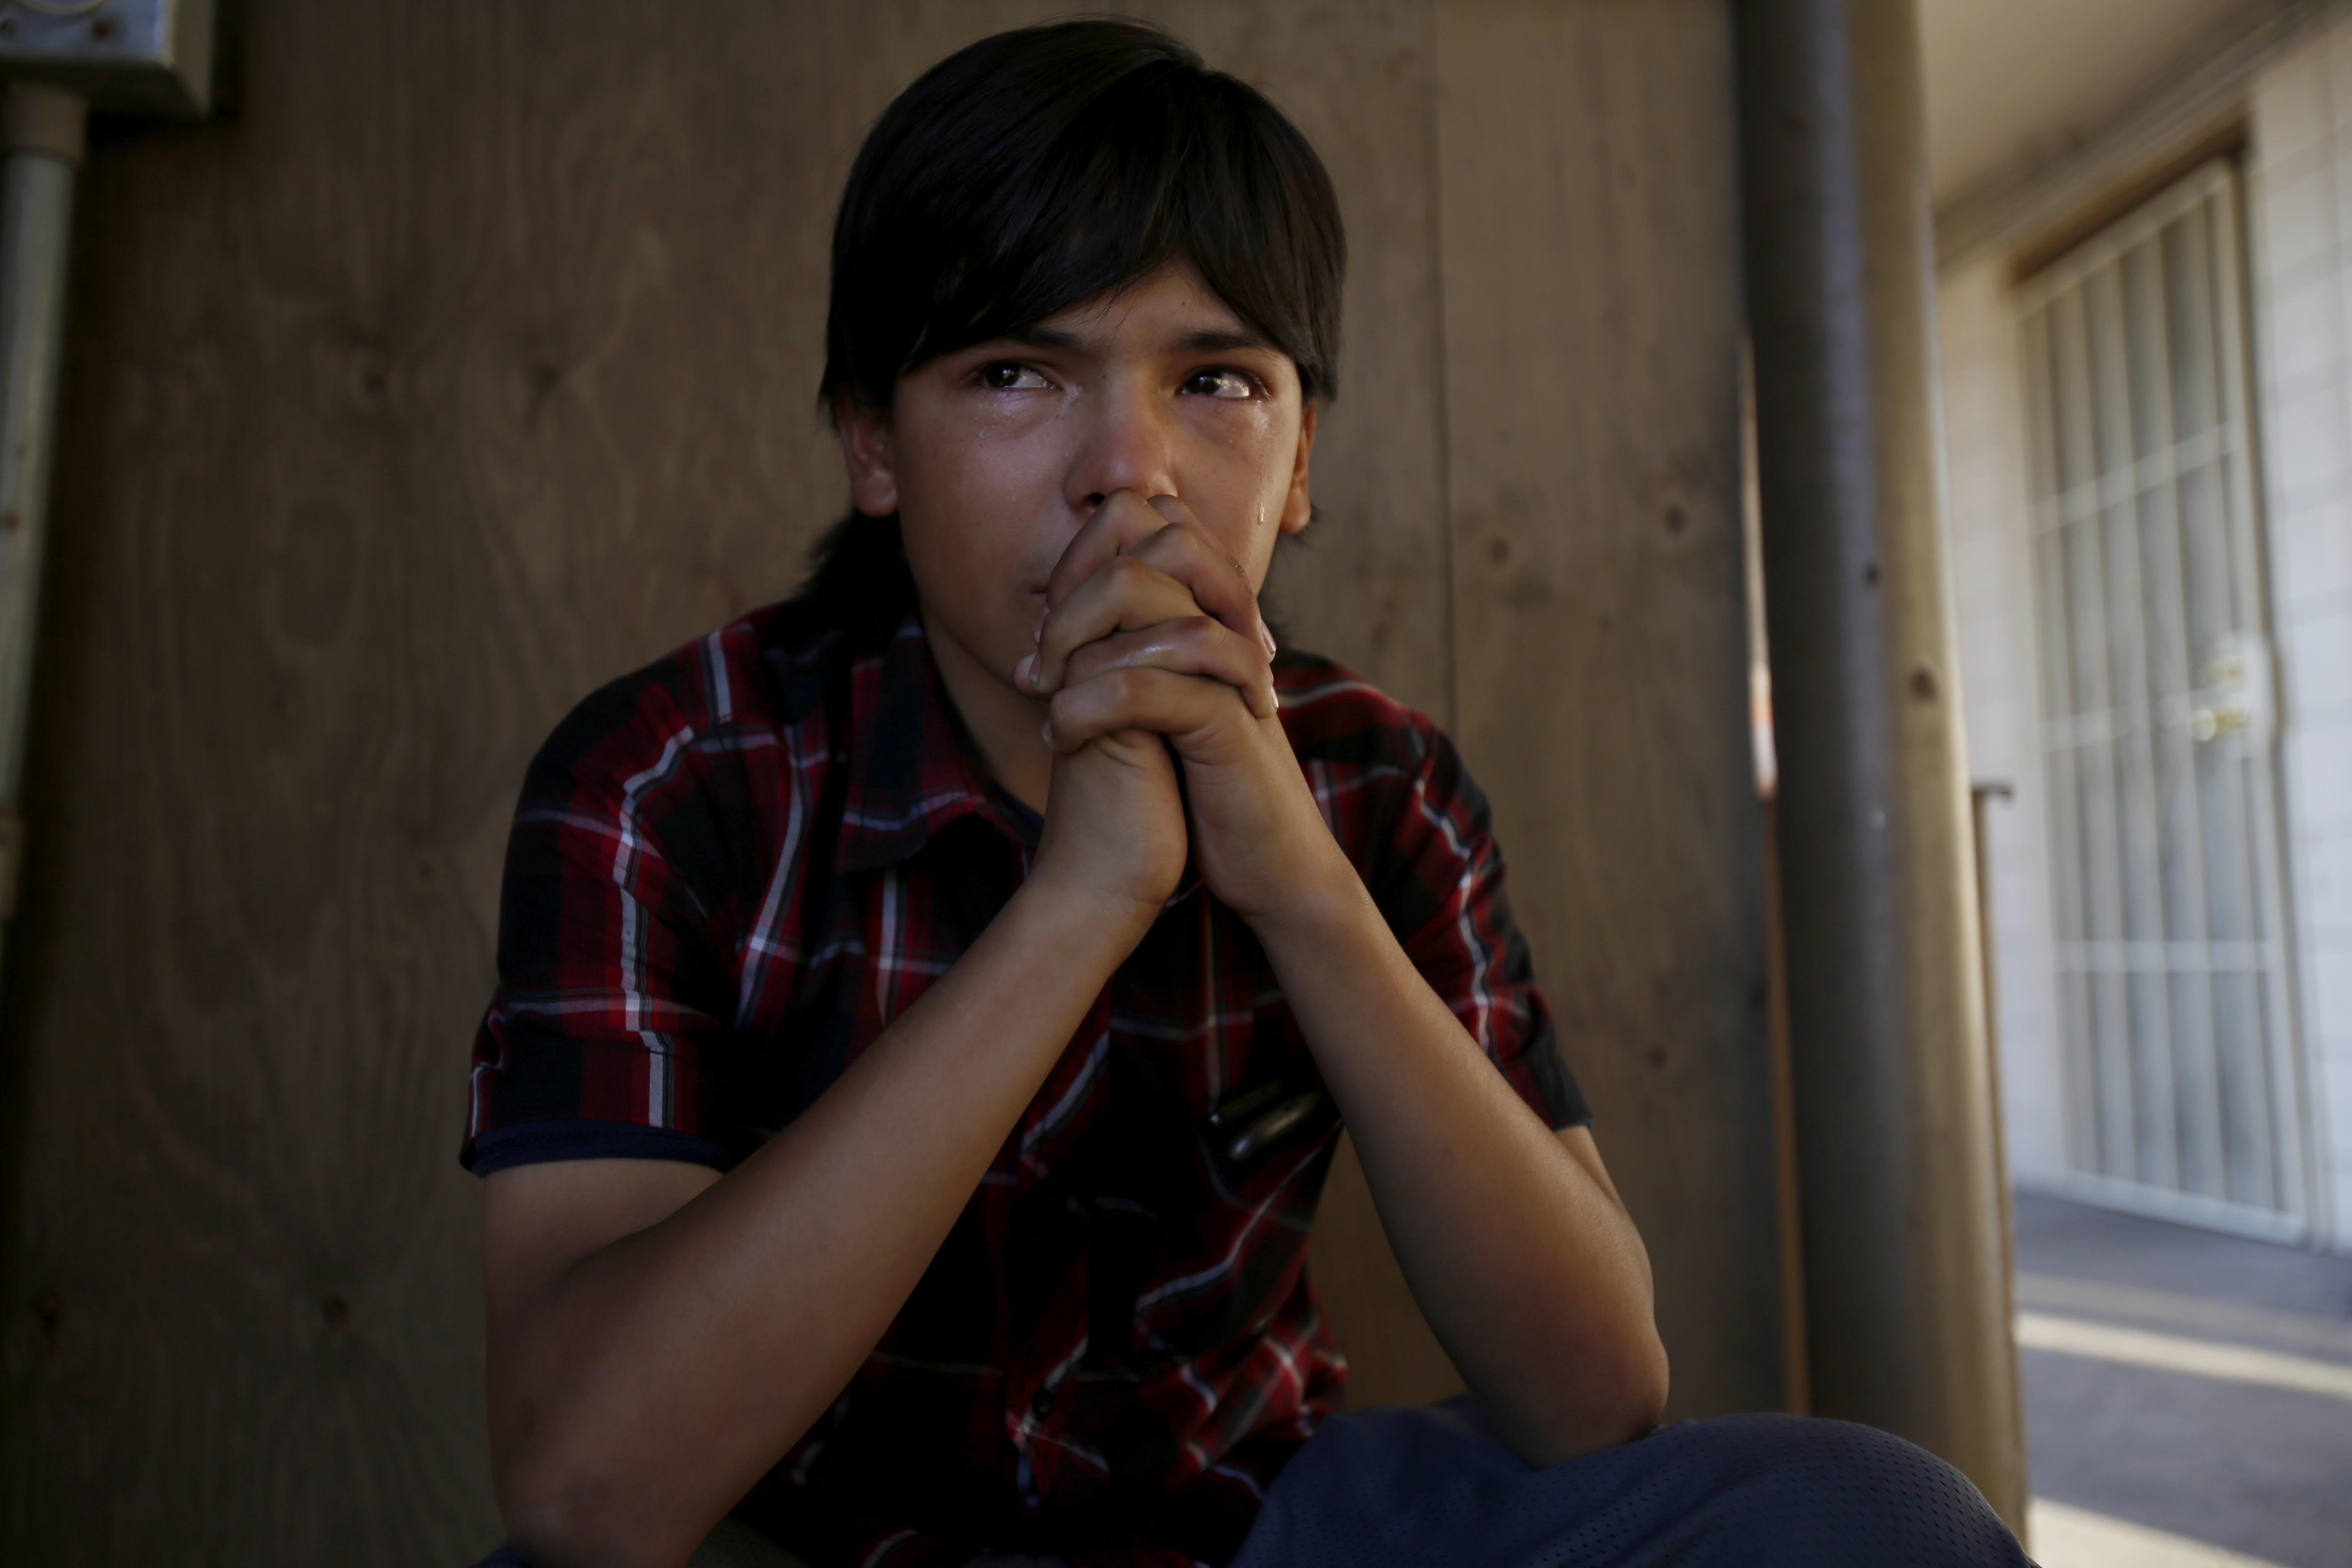 The Los Angeles Times: No room at the inn for innocenceEddie Martinez, 14, sits crying in the stairwell.